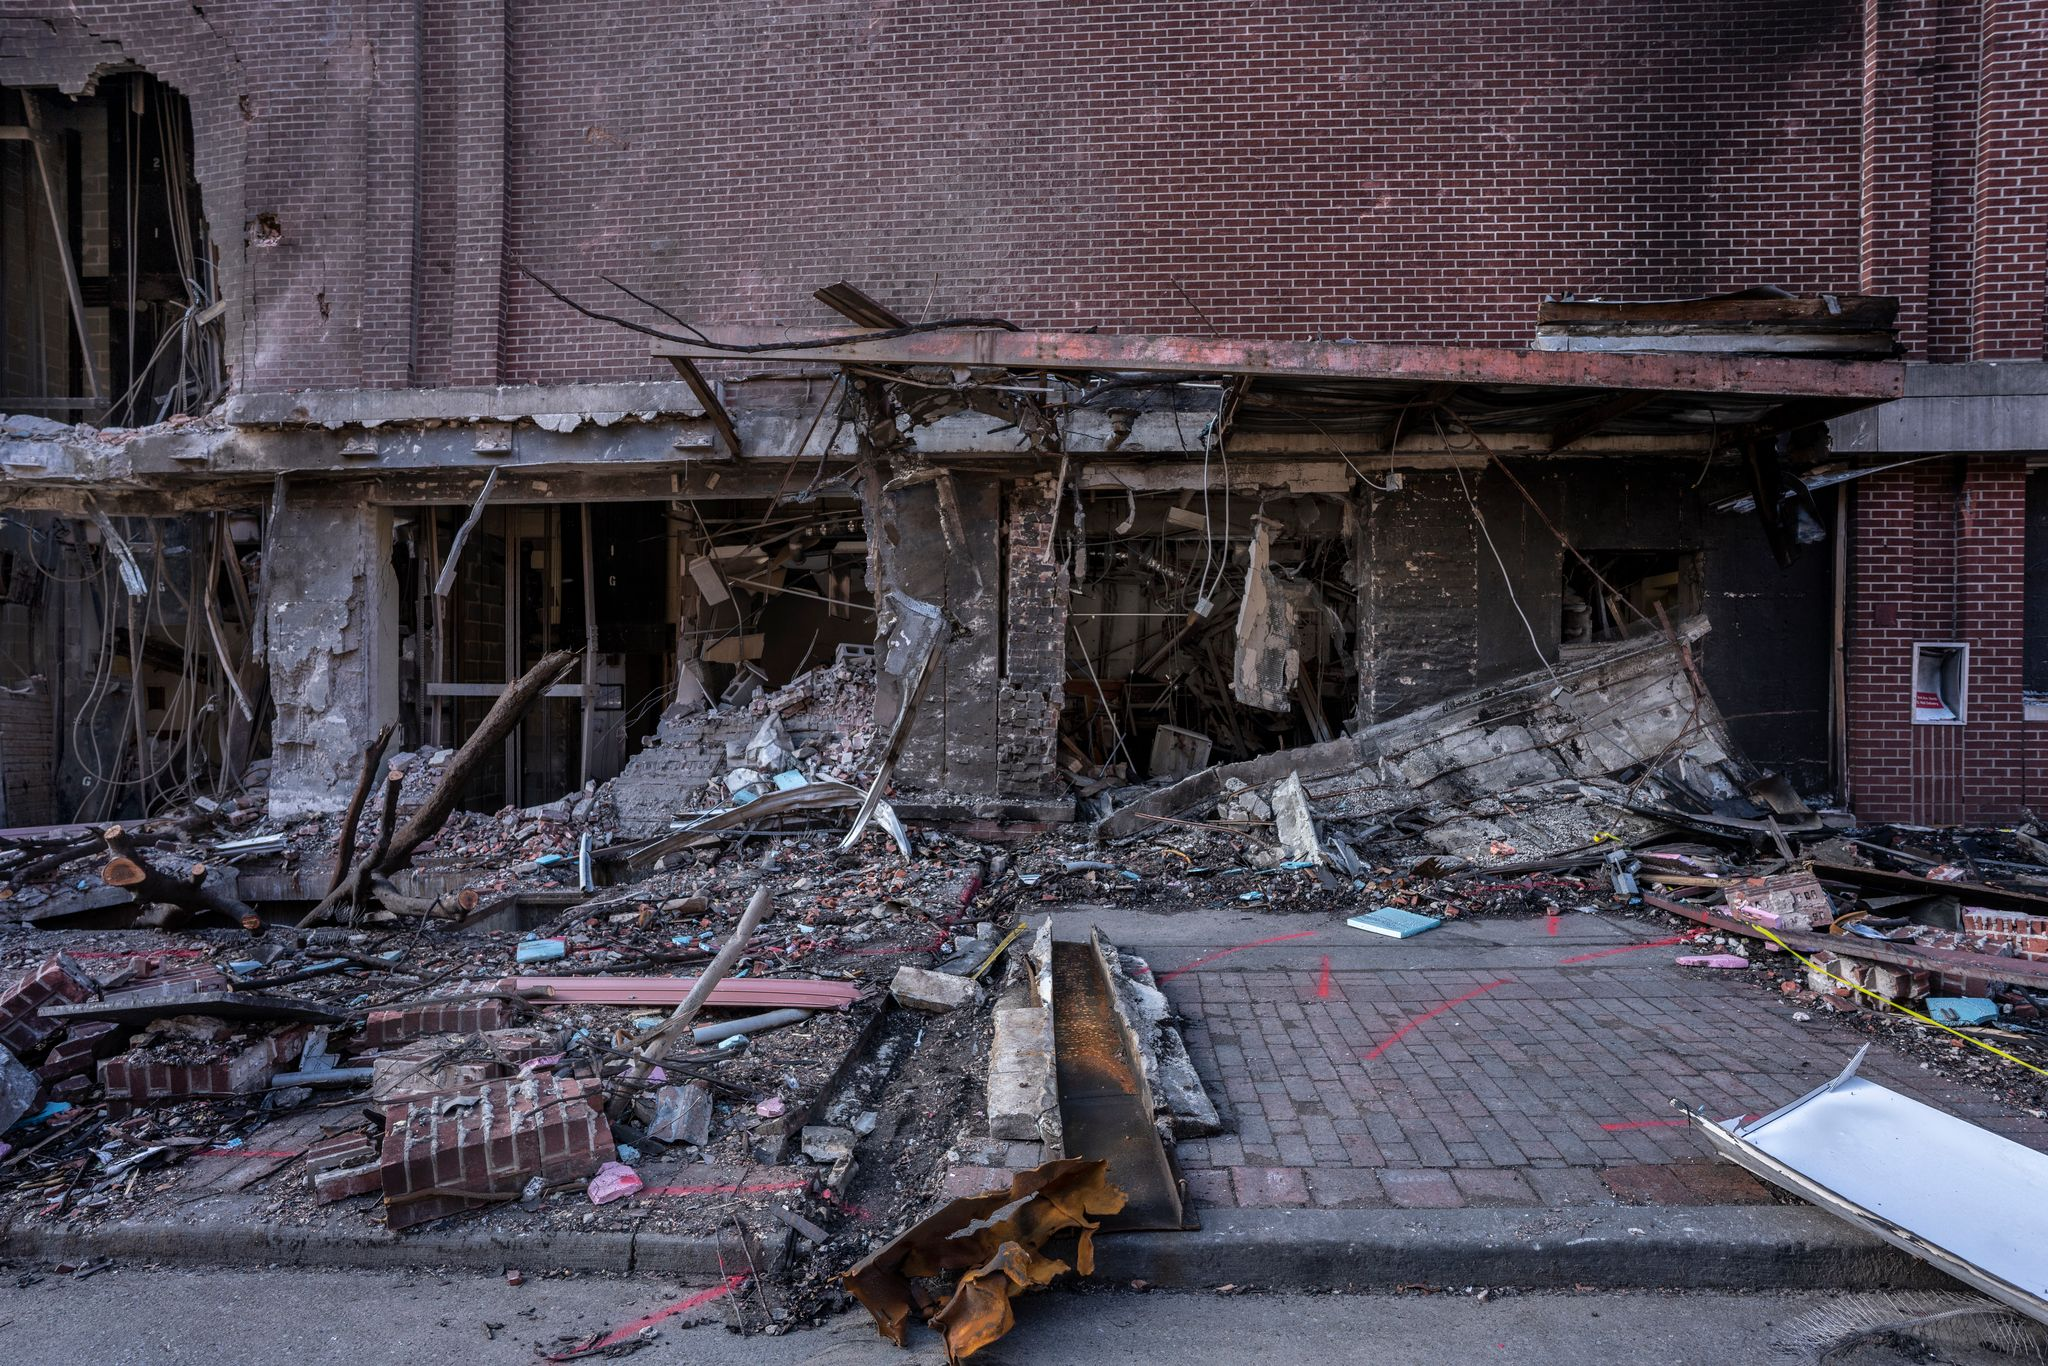 The facade of the AT&T building damaged by a Christmas Day bomb, photographed Jan. 5, 2021. (Photo: John Partipilo)